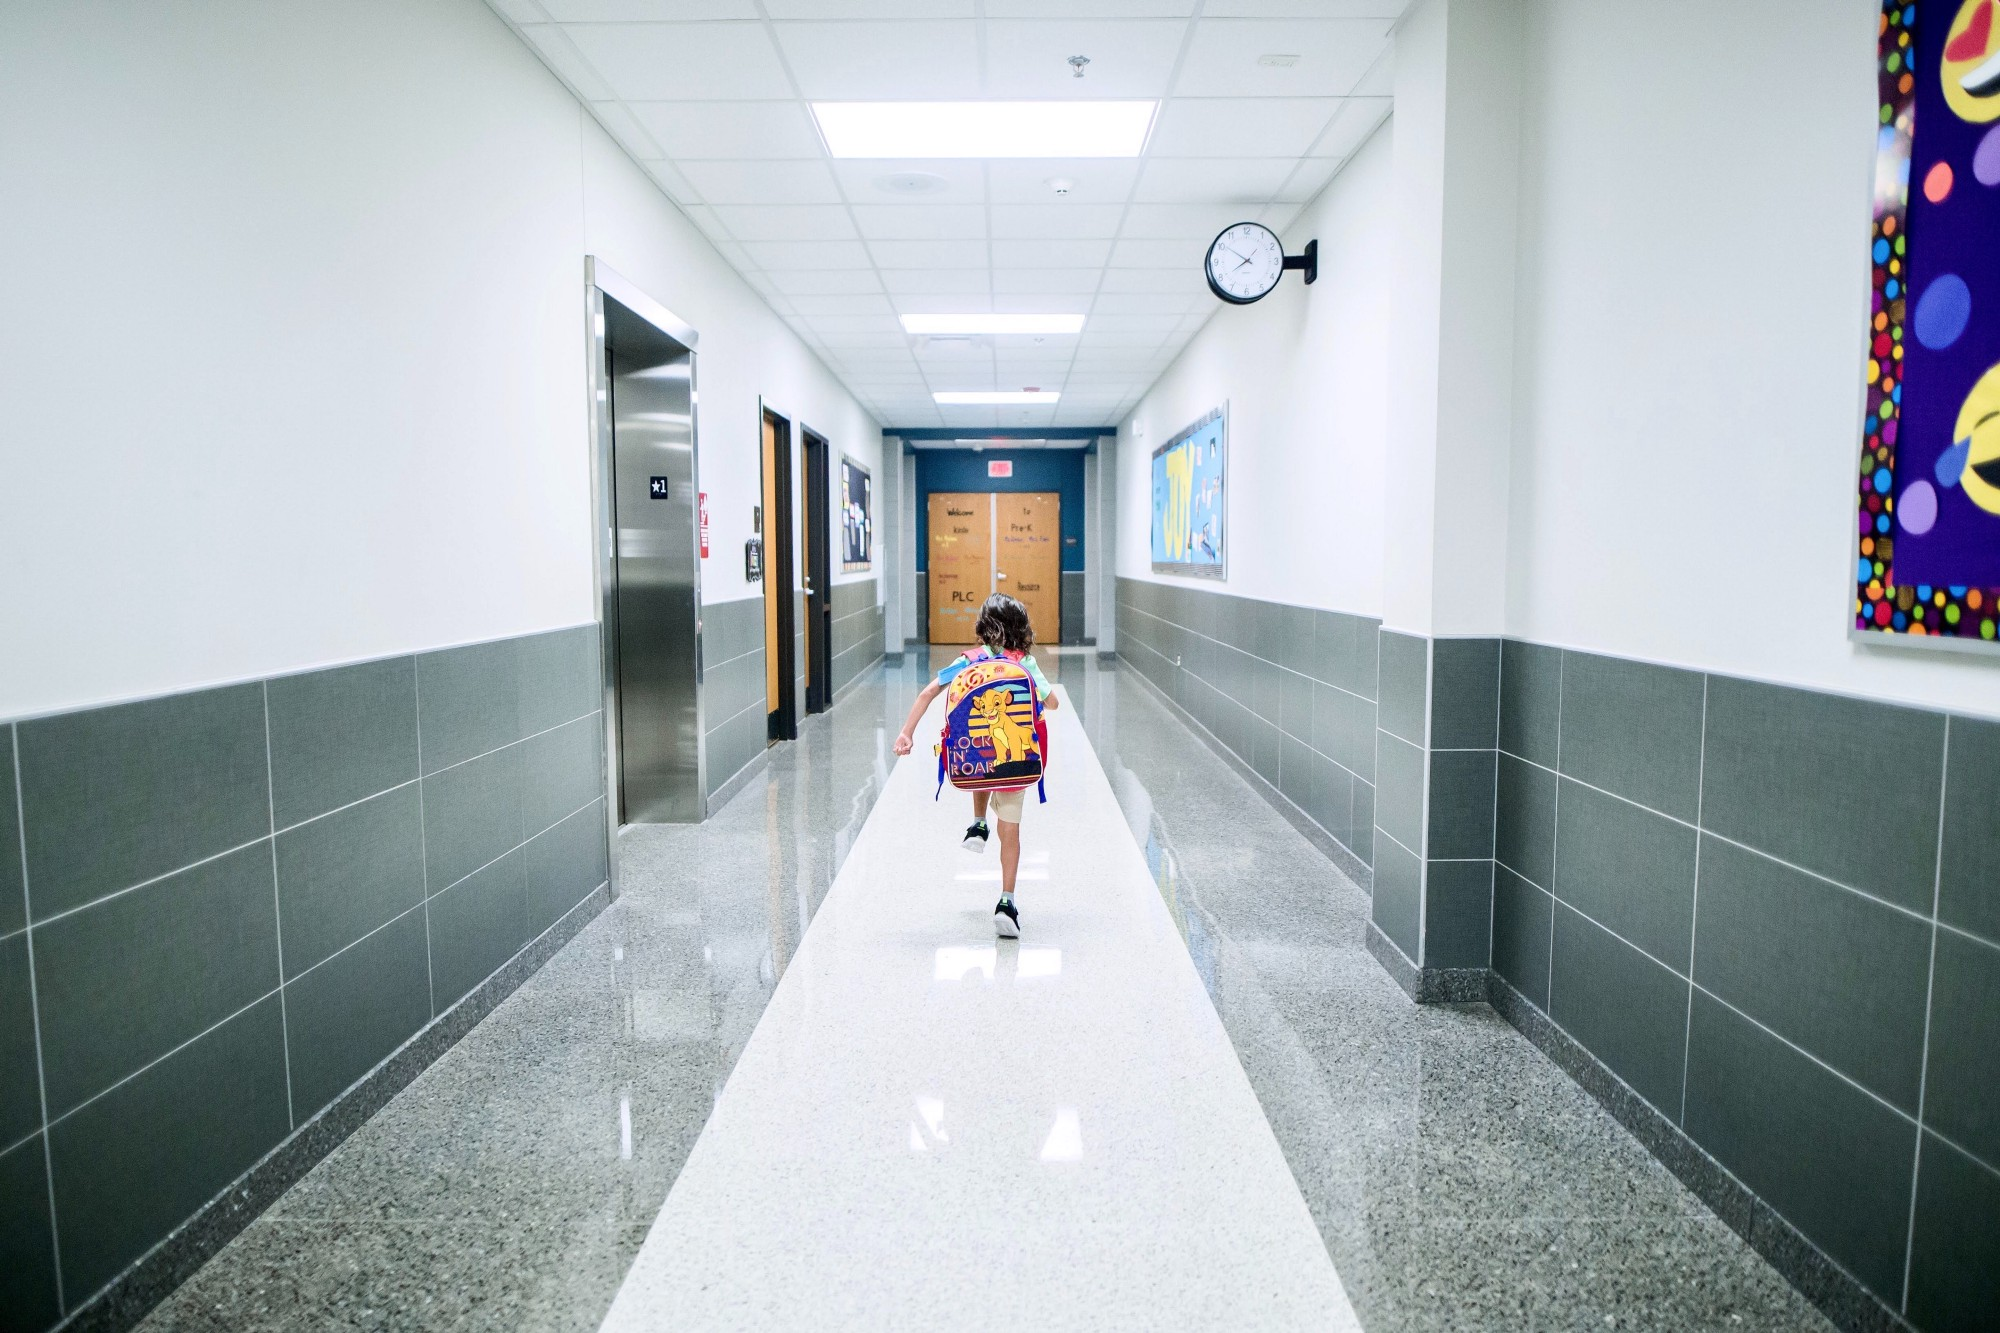 Boy running in the hallway at school.